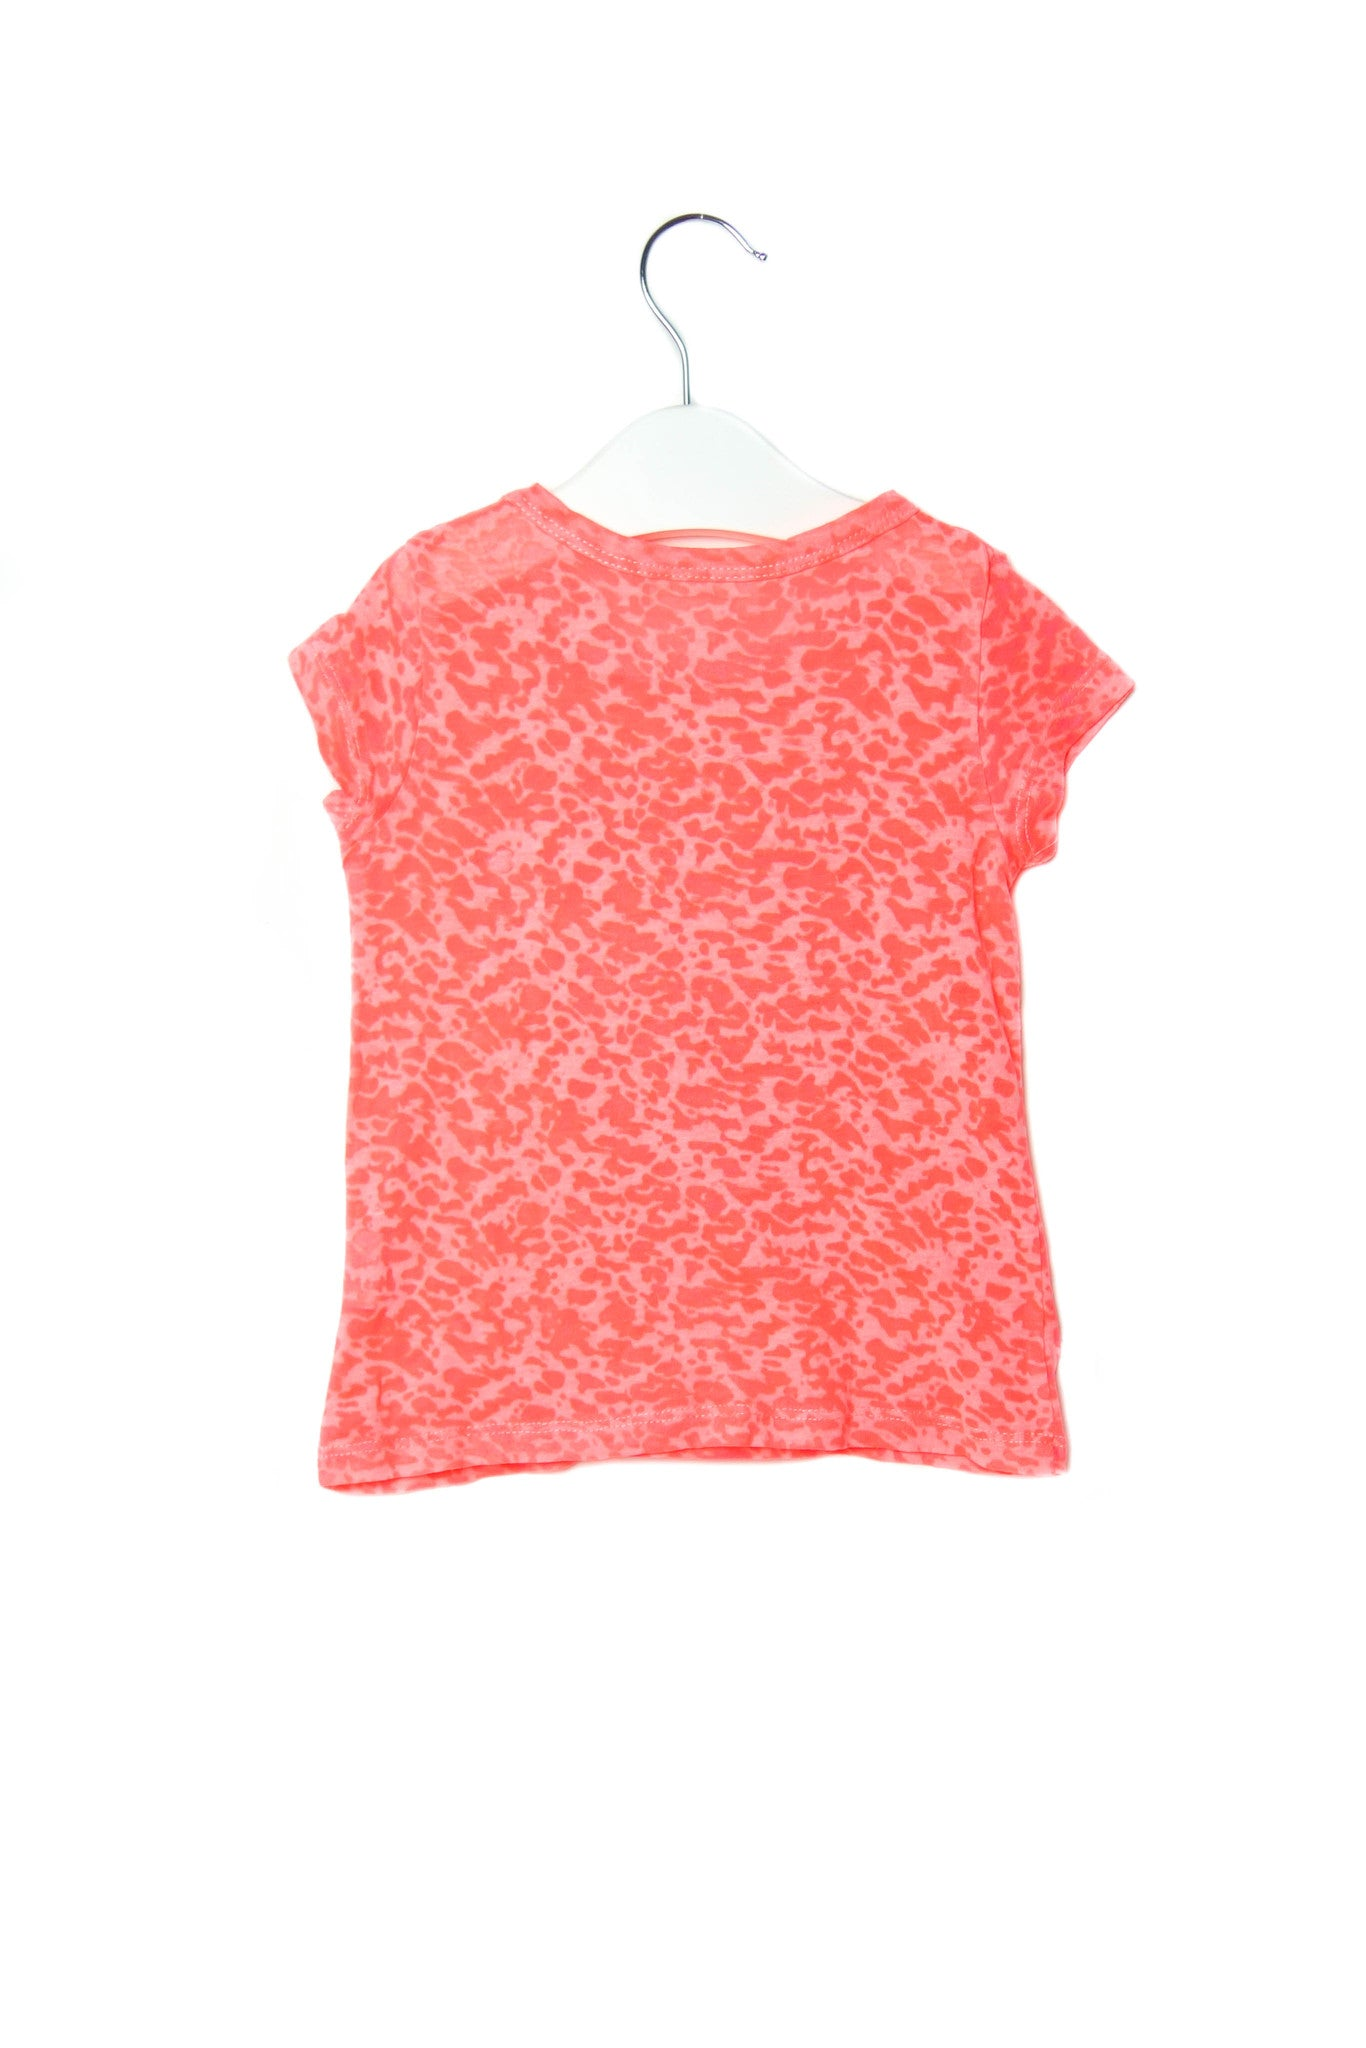 10001410~T-Shirt 2-3T, Seed at Retykle - Online Baby & Kids Clothing Up to 90% Off